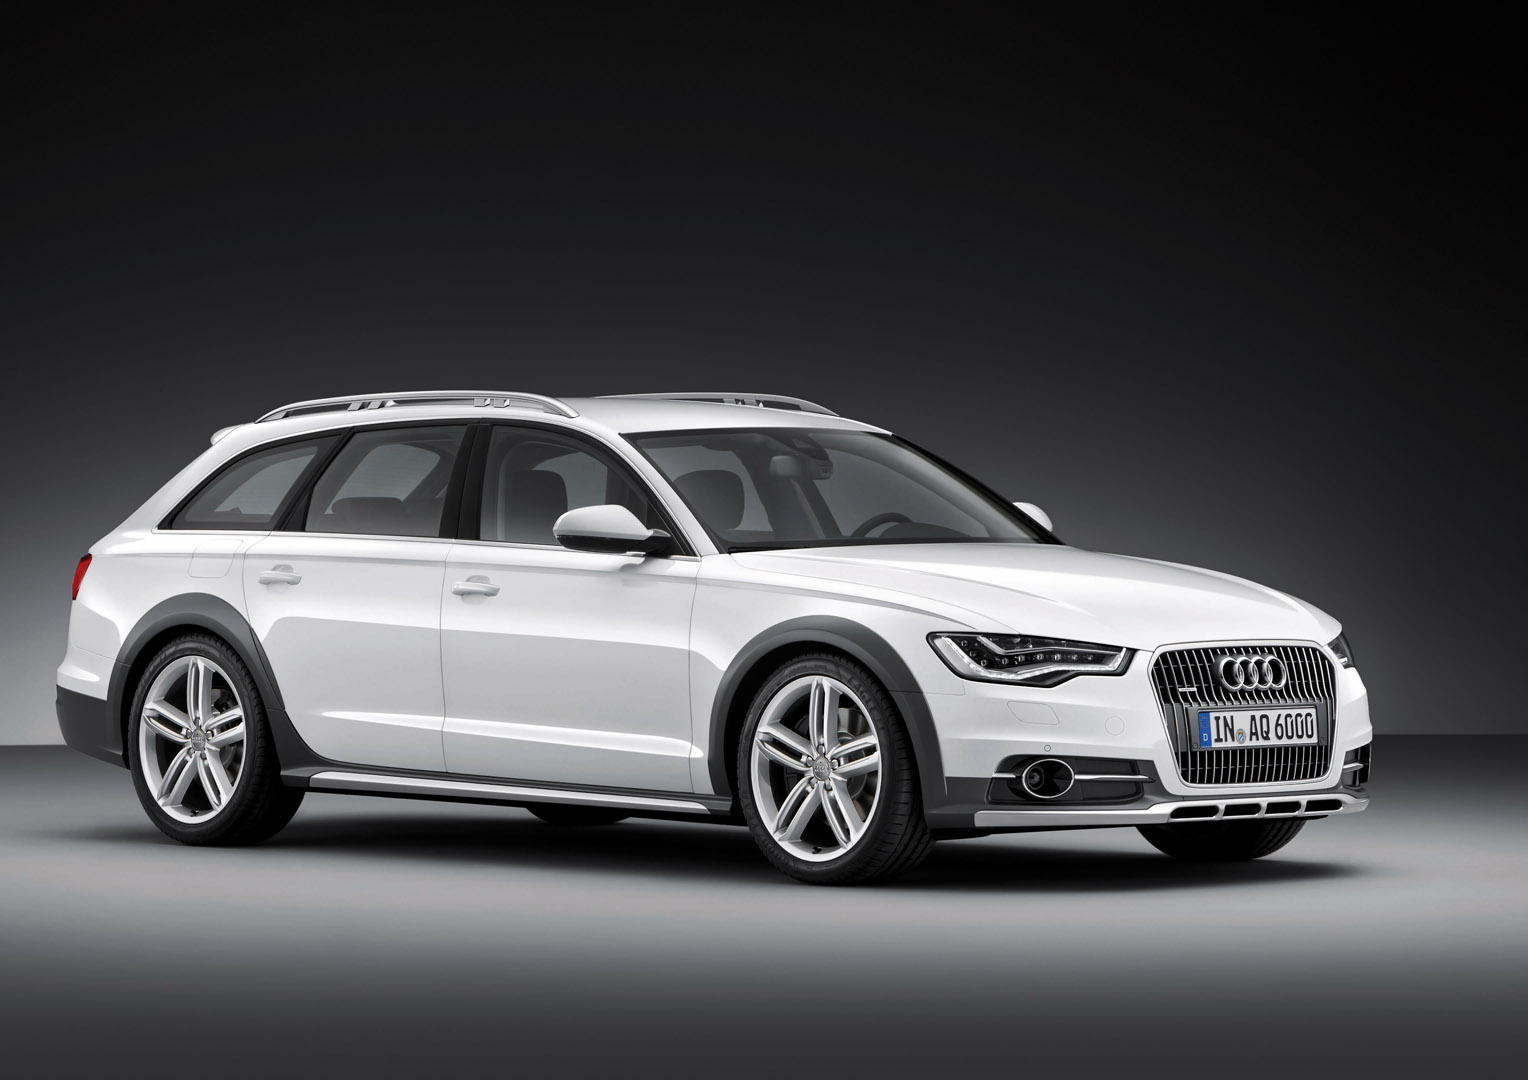 Sport Cars Audi A6 Allroad Quattro 3 0 Tdi Hd Wallpapers 2012